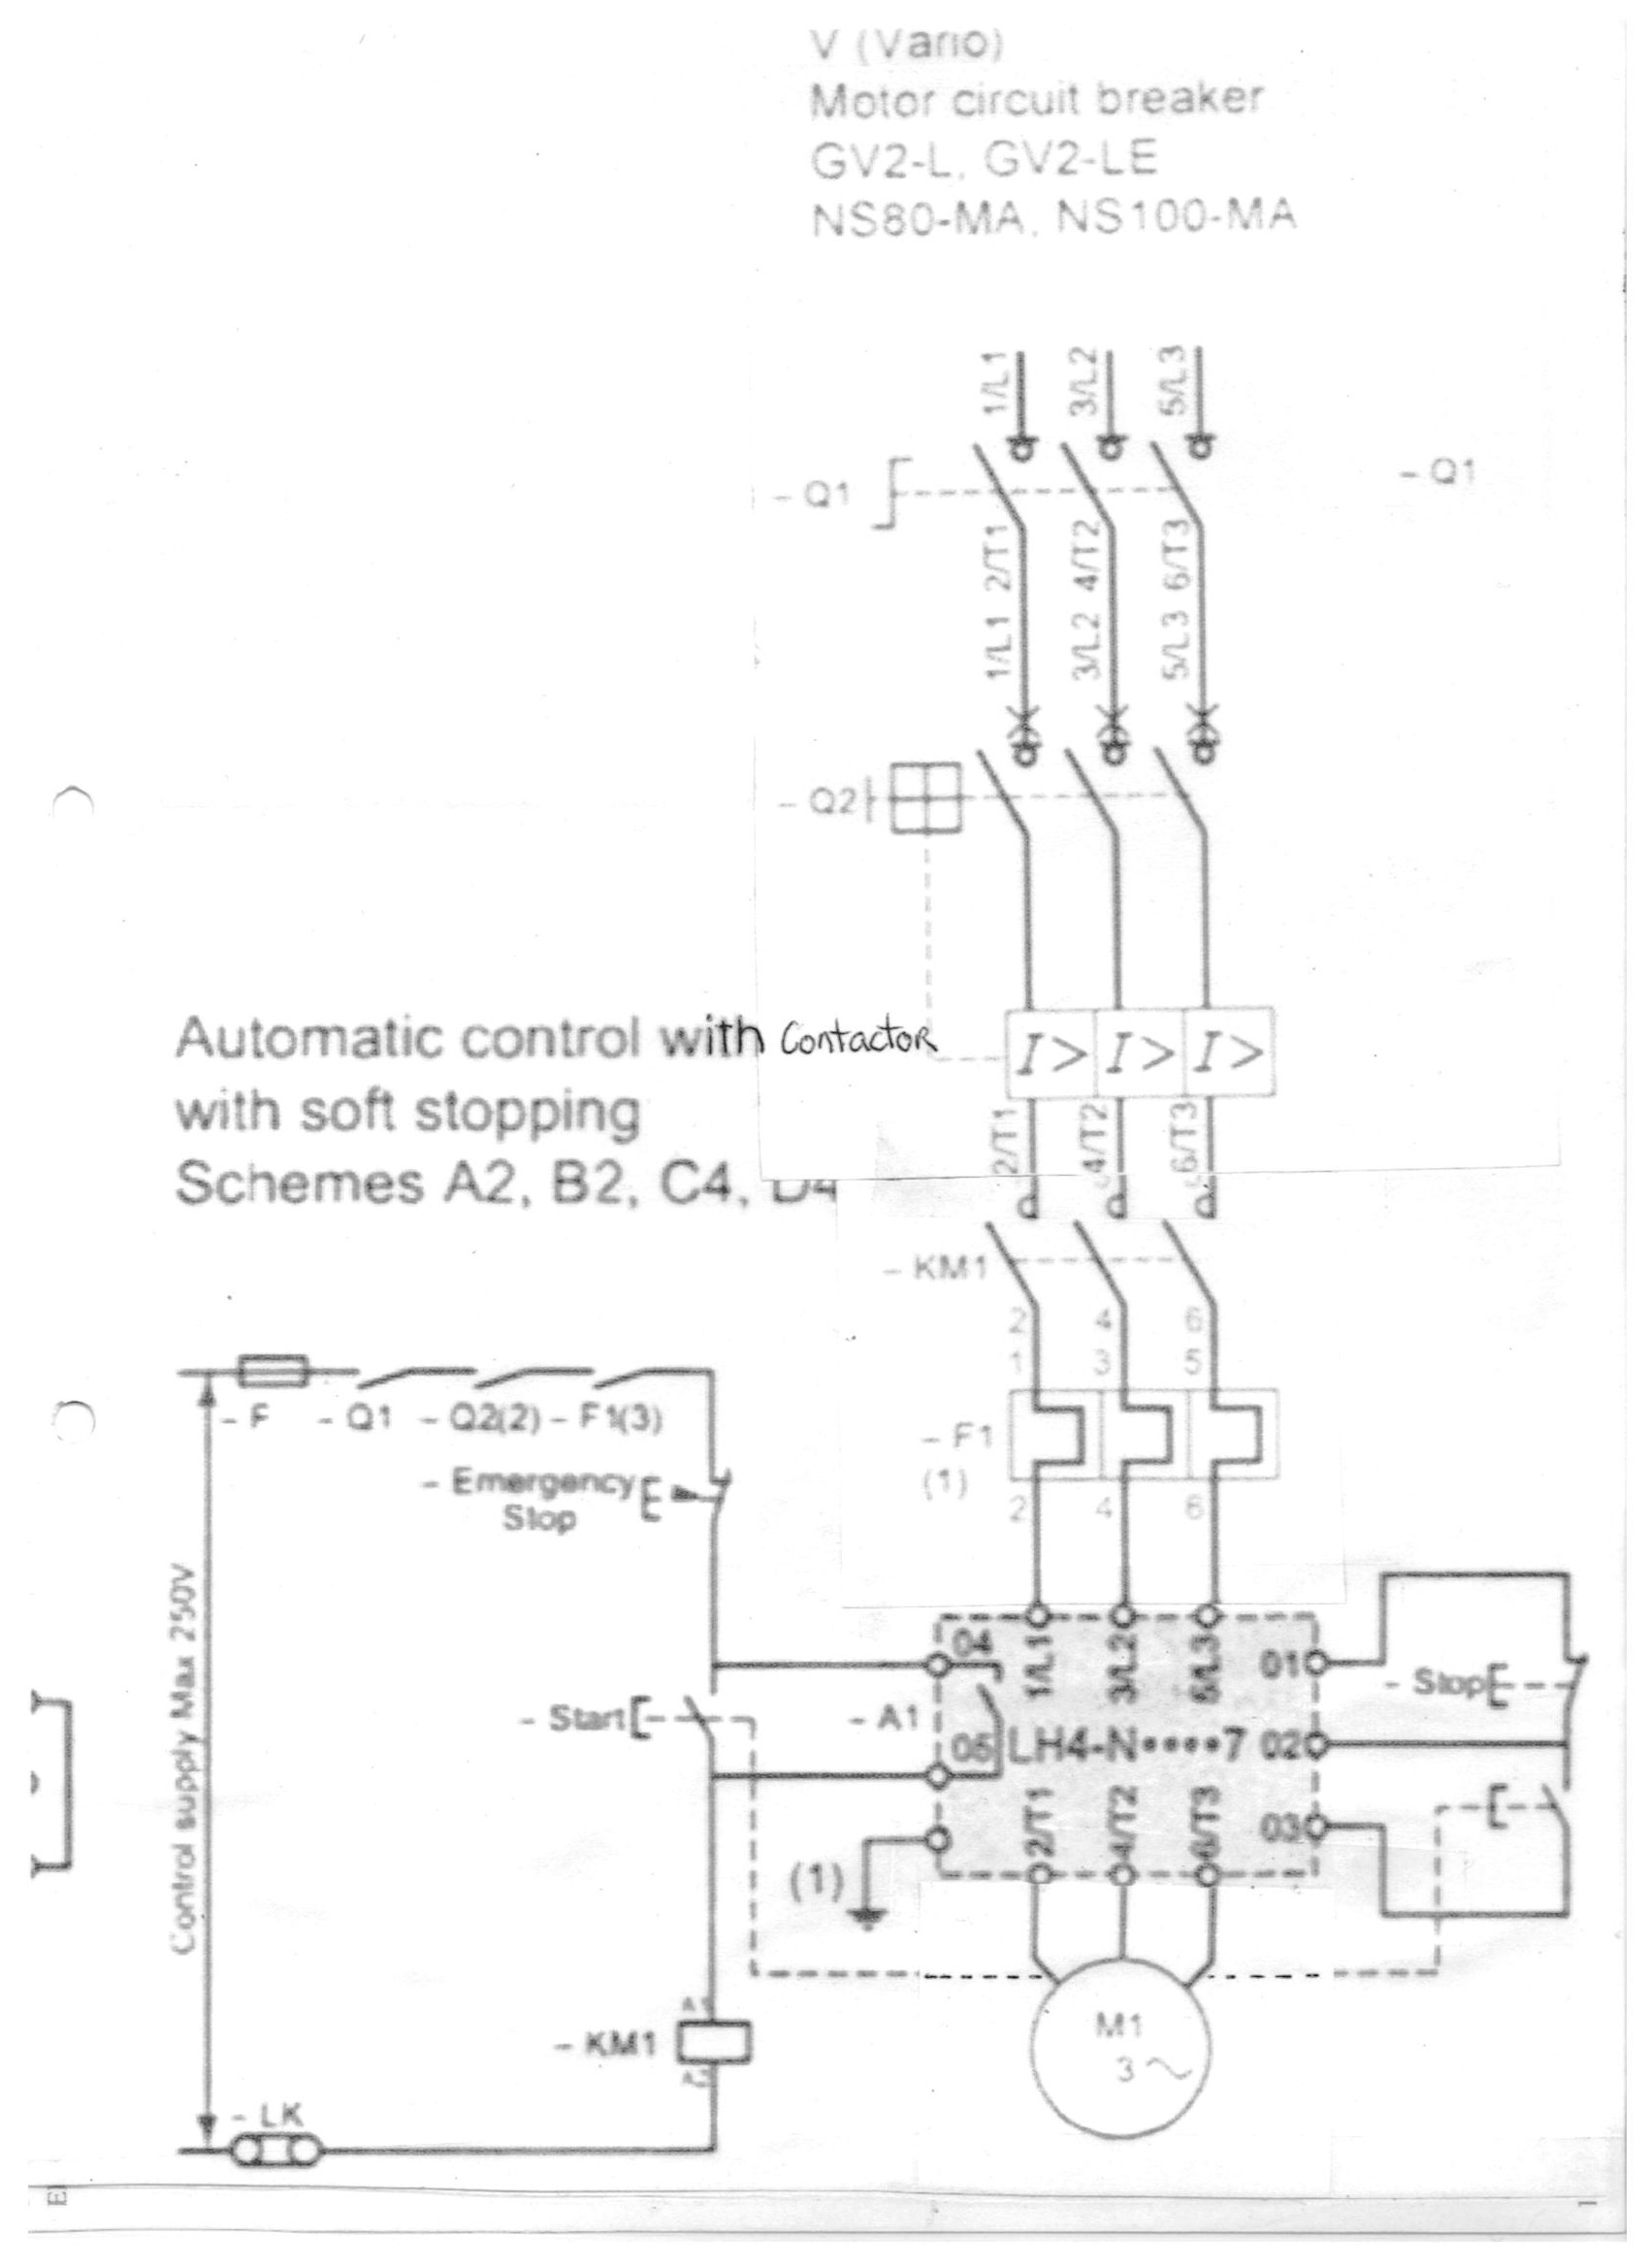 Eaton Magnetic Starter Wiring Diagram - 24h schemes on